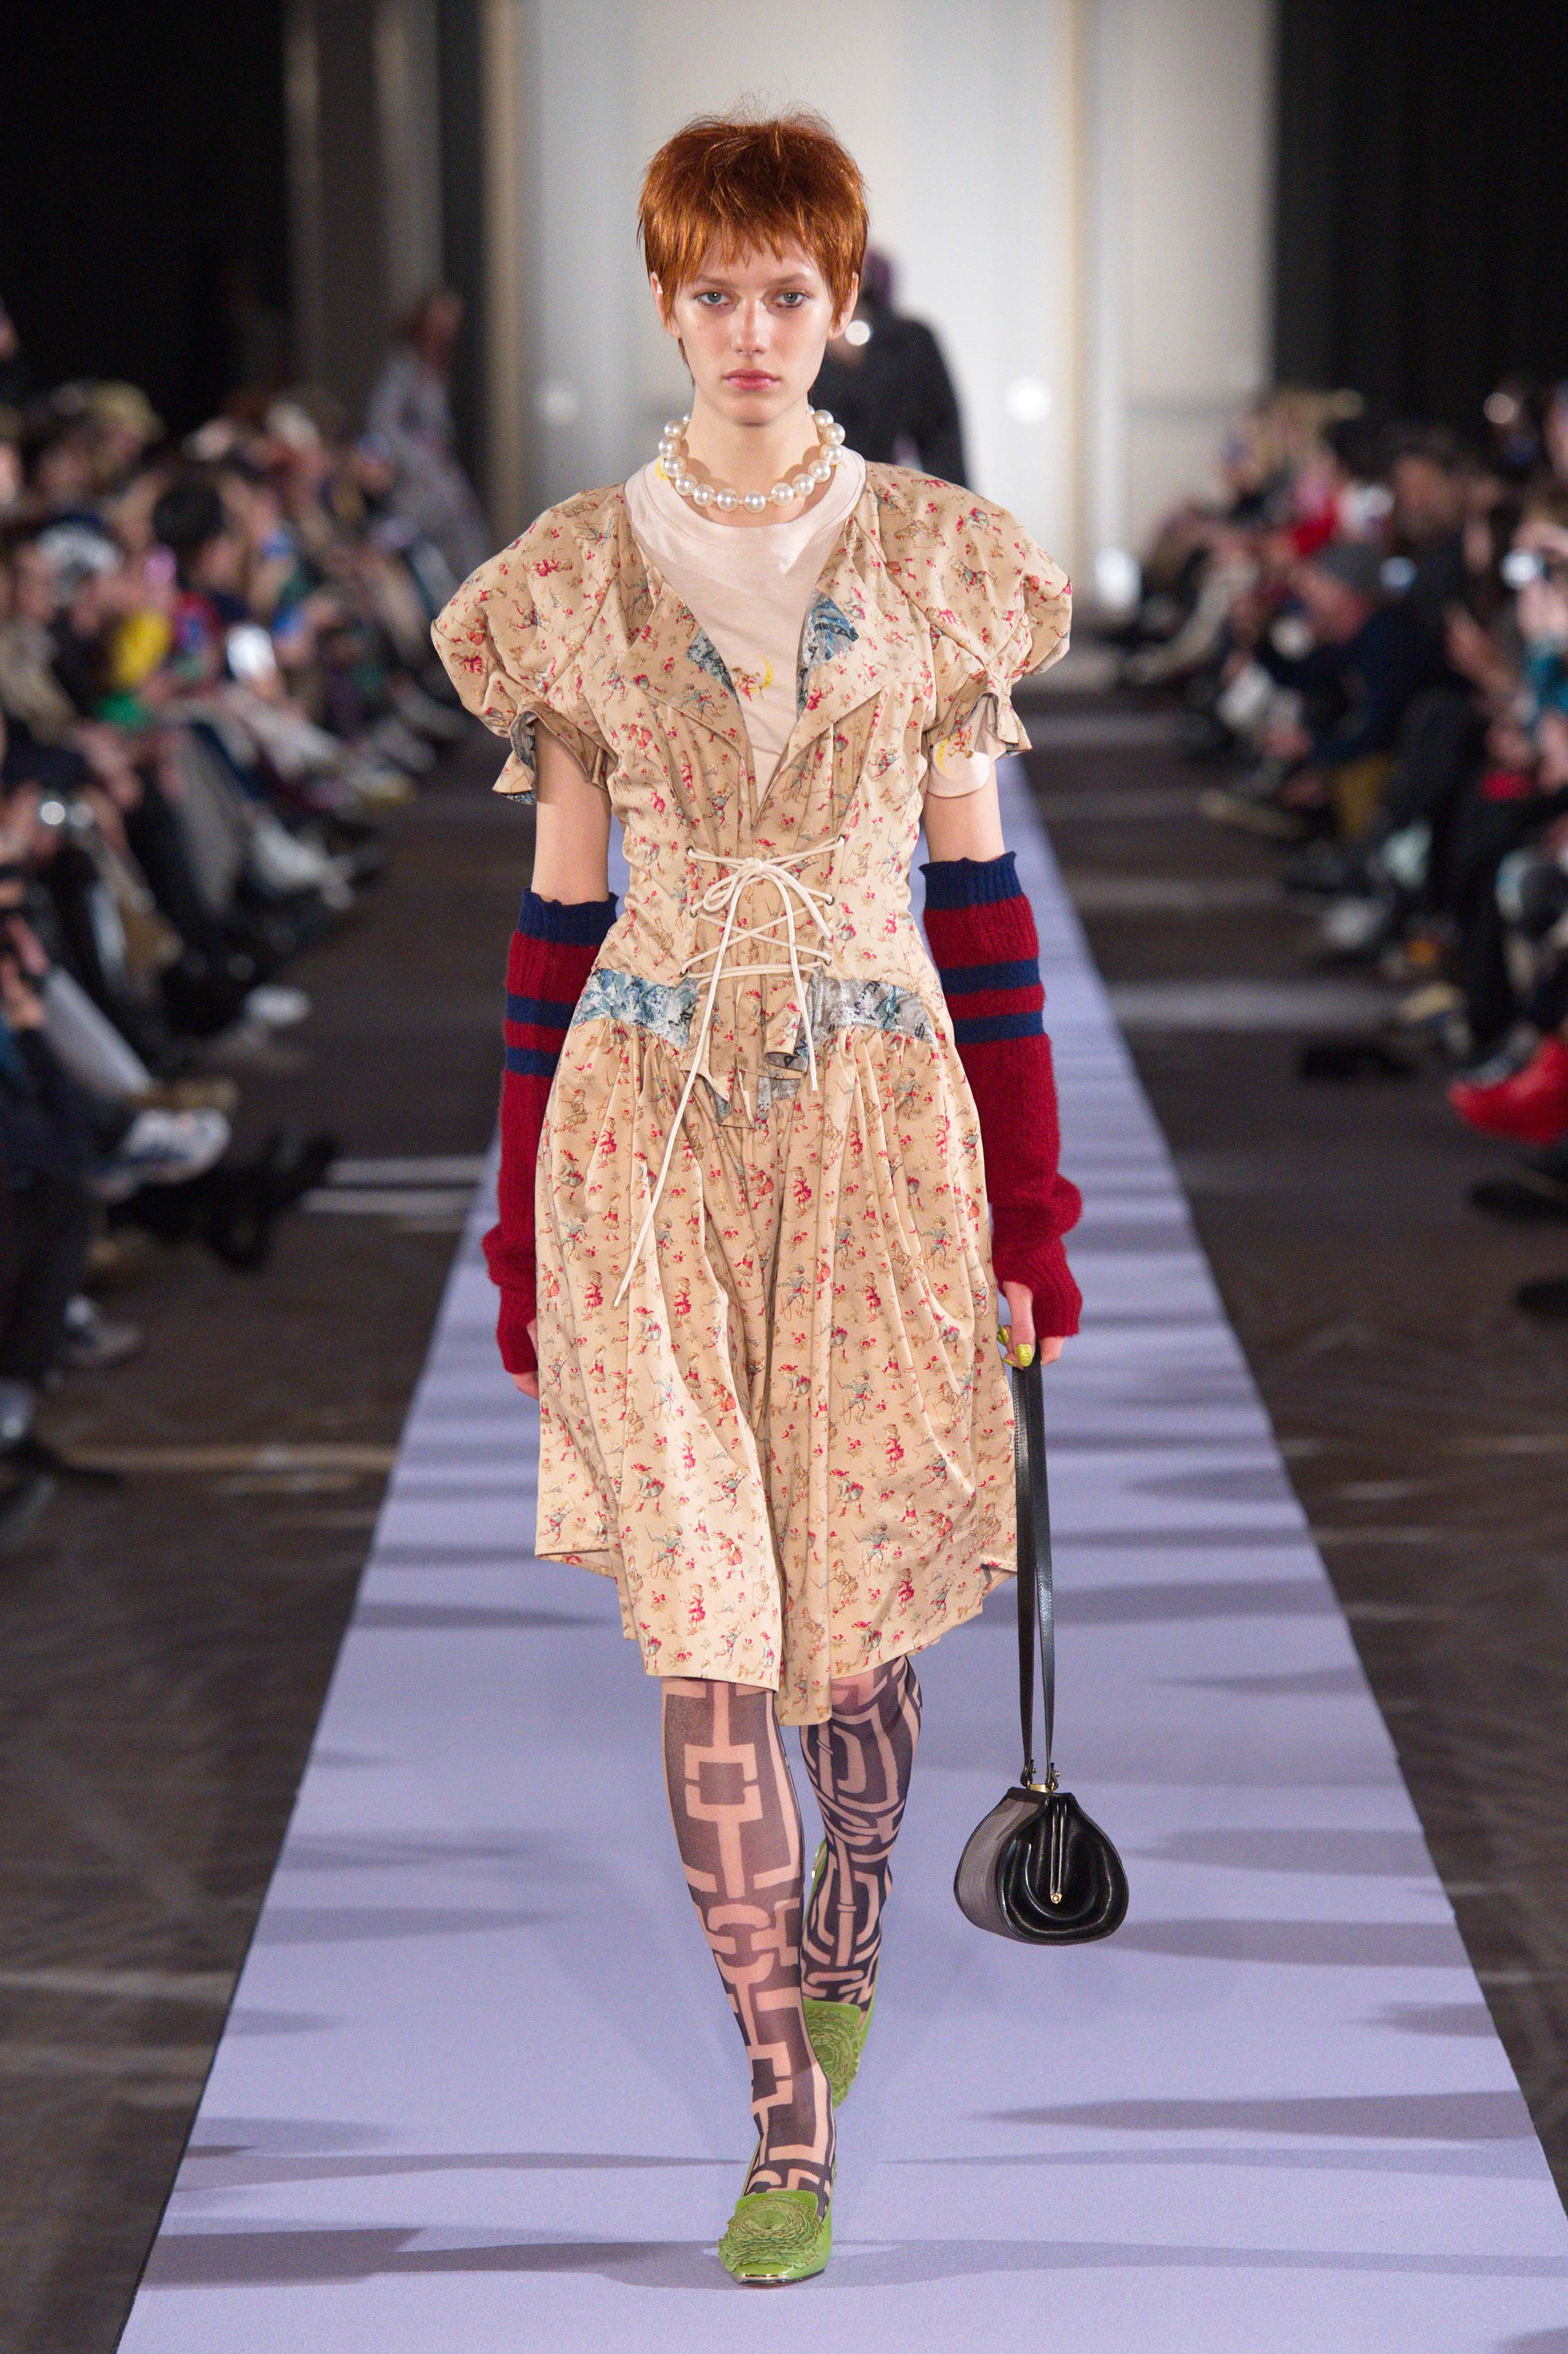 67350f5537 The collection / Andreas Kronthaler for Vivienne Westwood Autumn-Winter  19/20 Catwalk